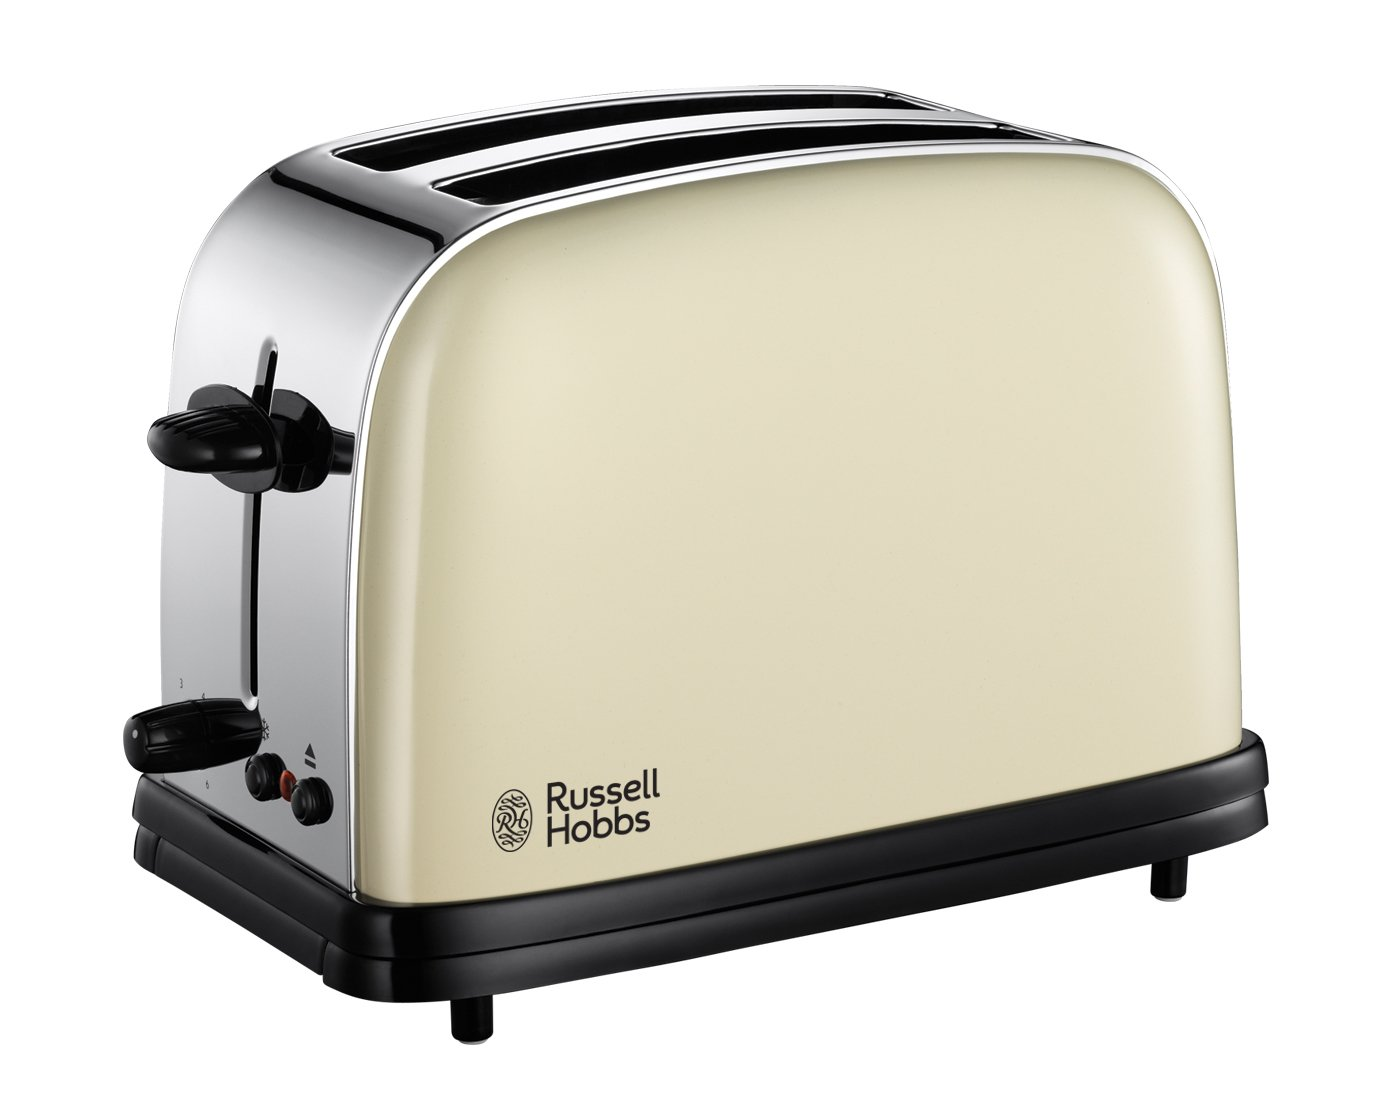 toaster russel hobbs deluxe metallic creme 2 scheiben toast 18953 grill ebay. Black Bedroom Furniture Sets. Home Design Ideas